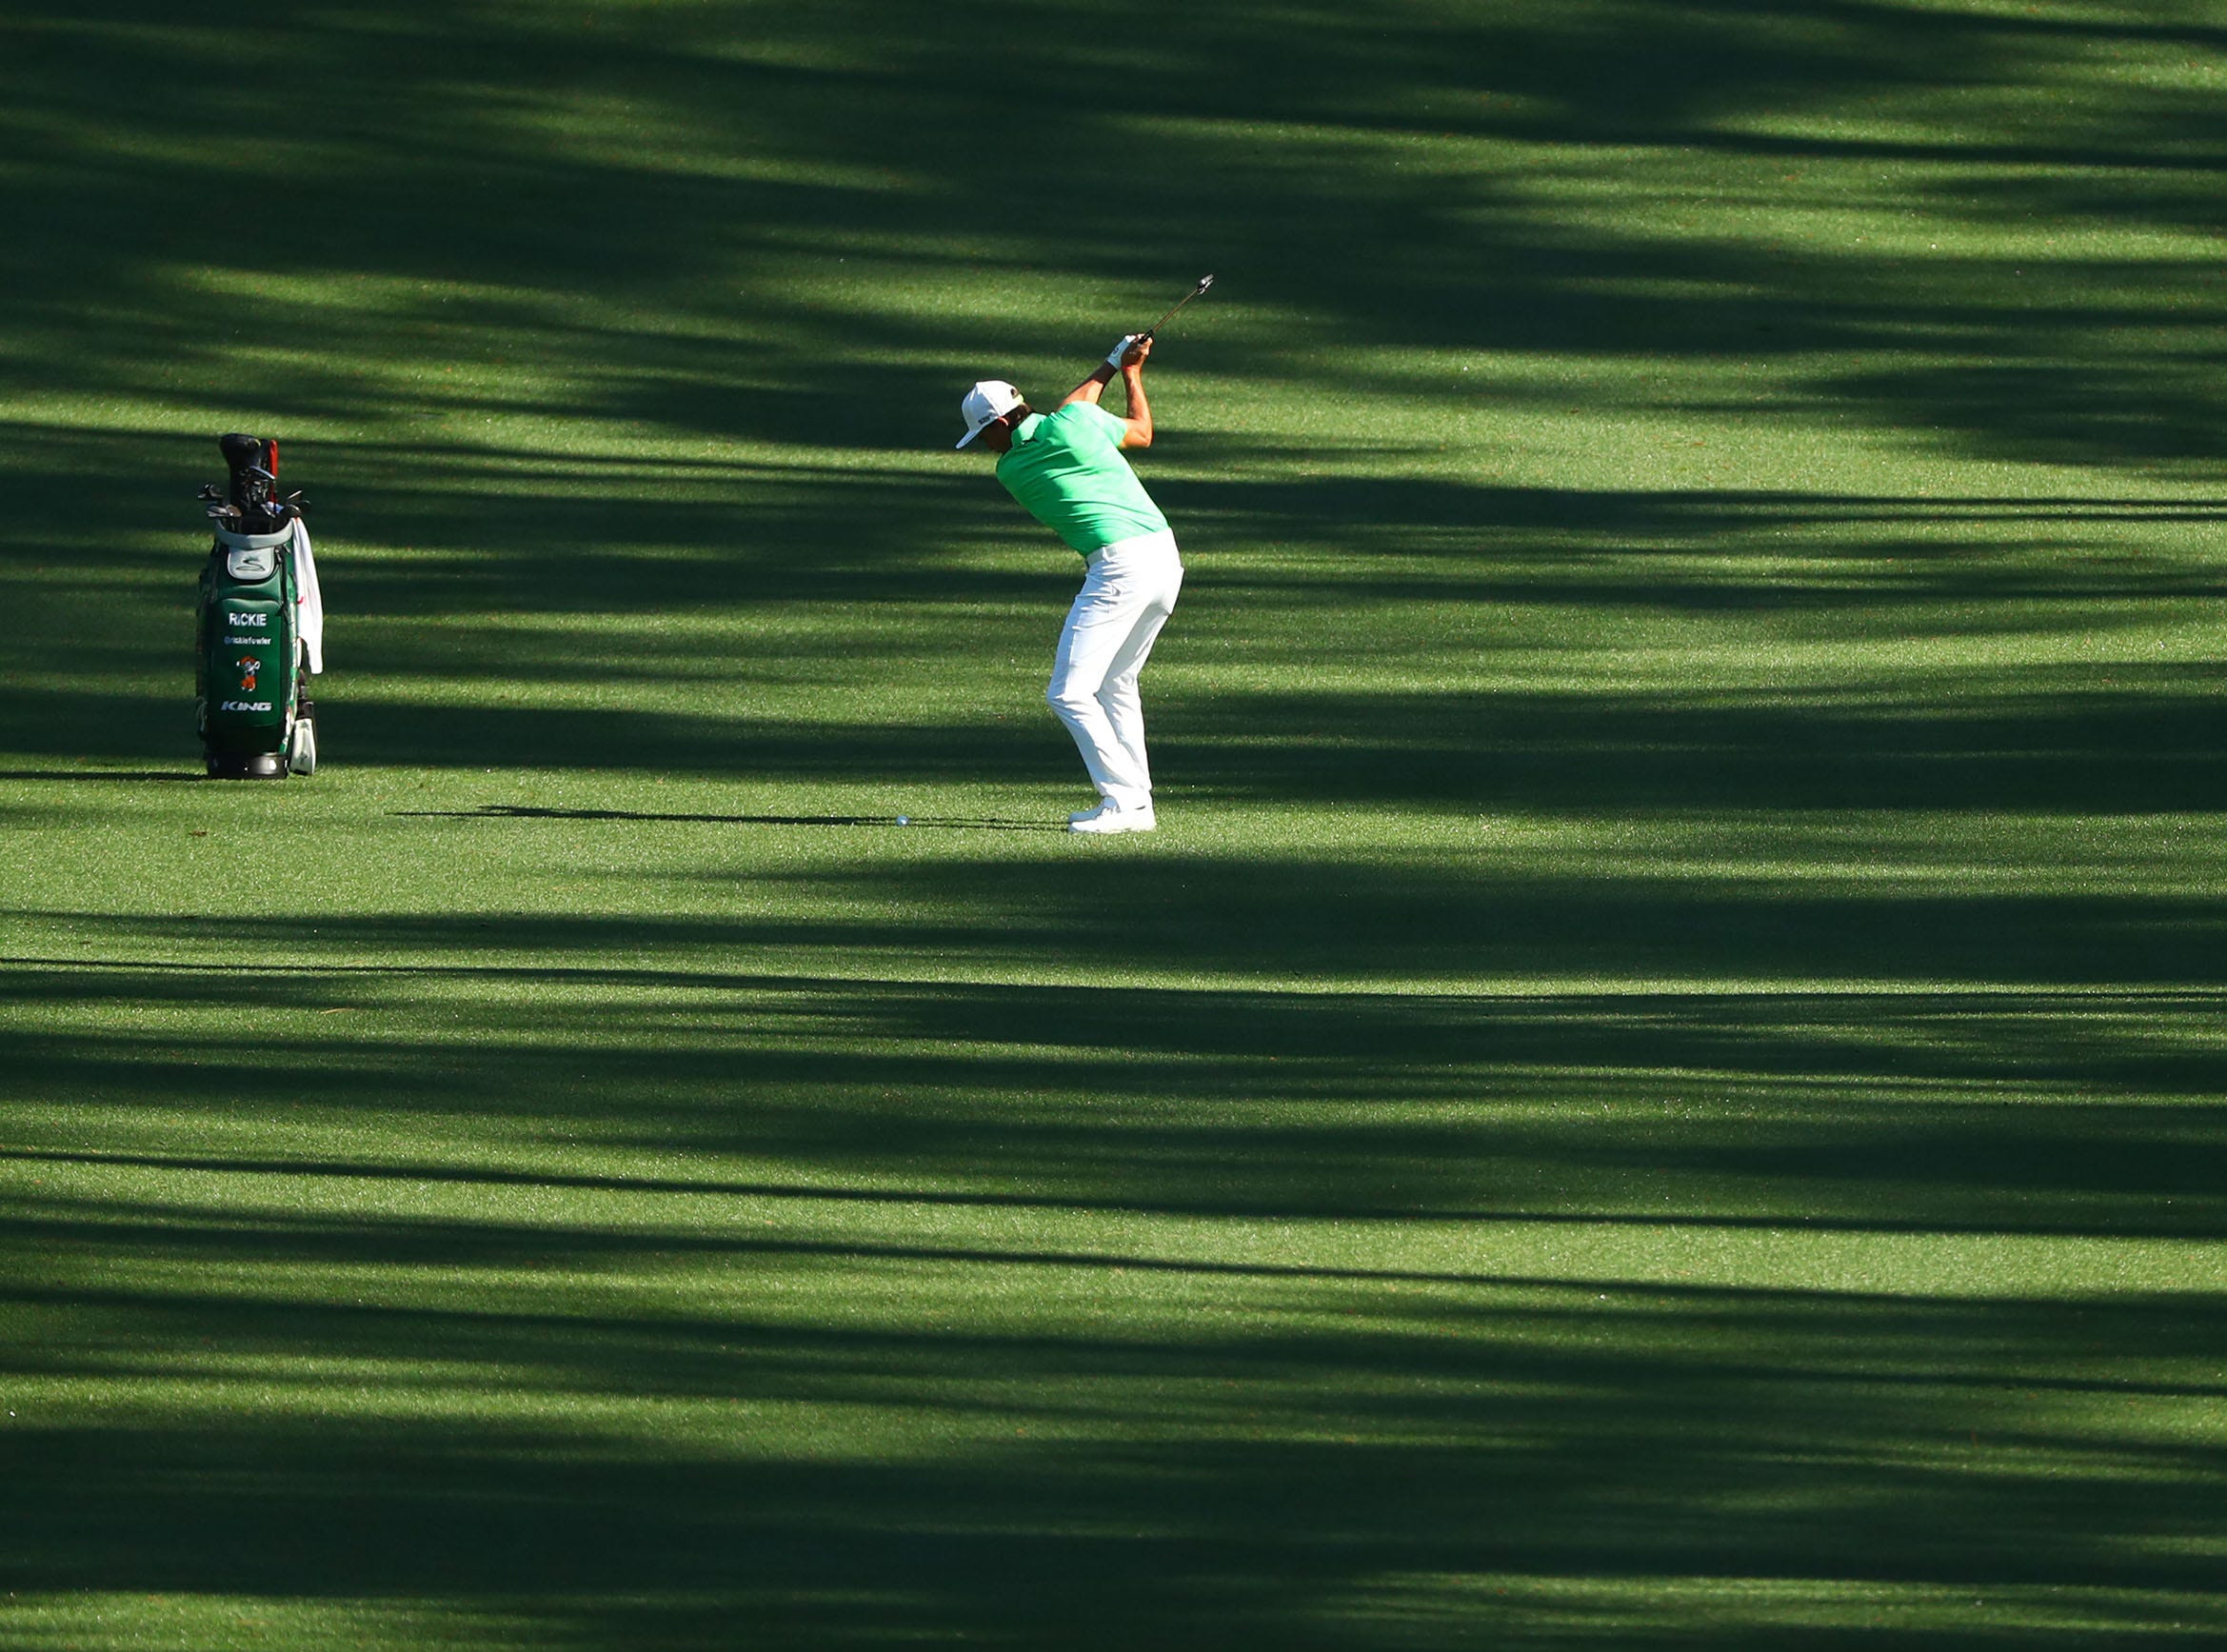 Apr 10, 2019; Augusta, GA, USA; Rickie Fowler plays a shot on the 10th fairway during a practice round for The Masters golf tournament at Augusta National Golf Club. Mandatory Credit: Rob Schumacher-USA TODAY Sports